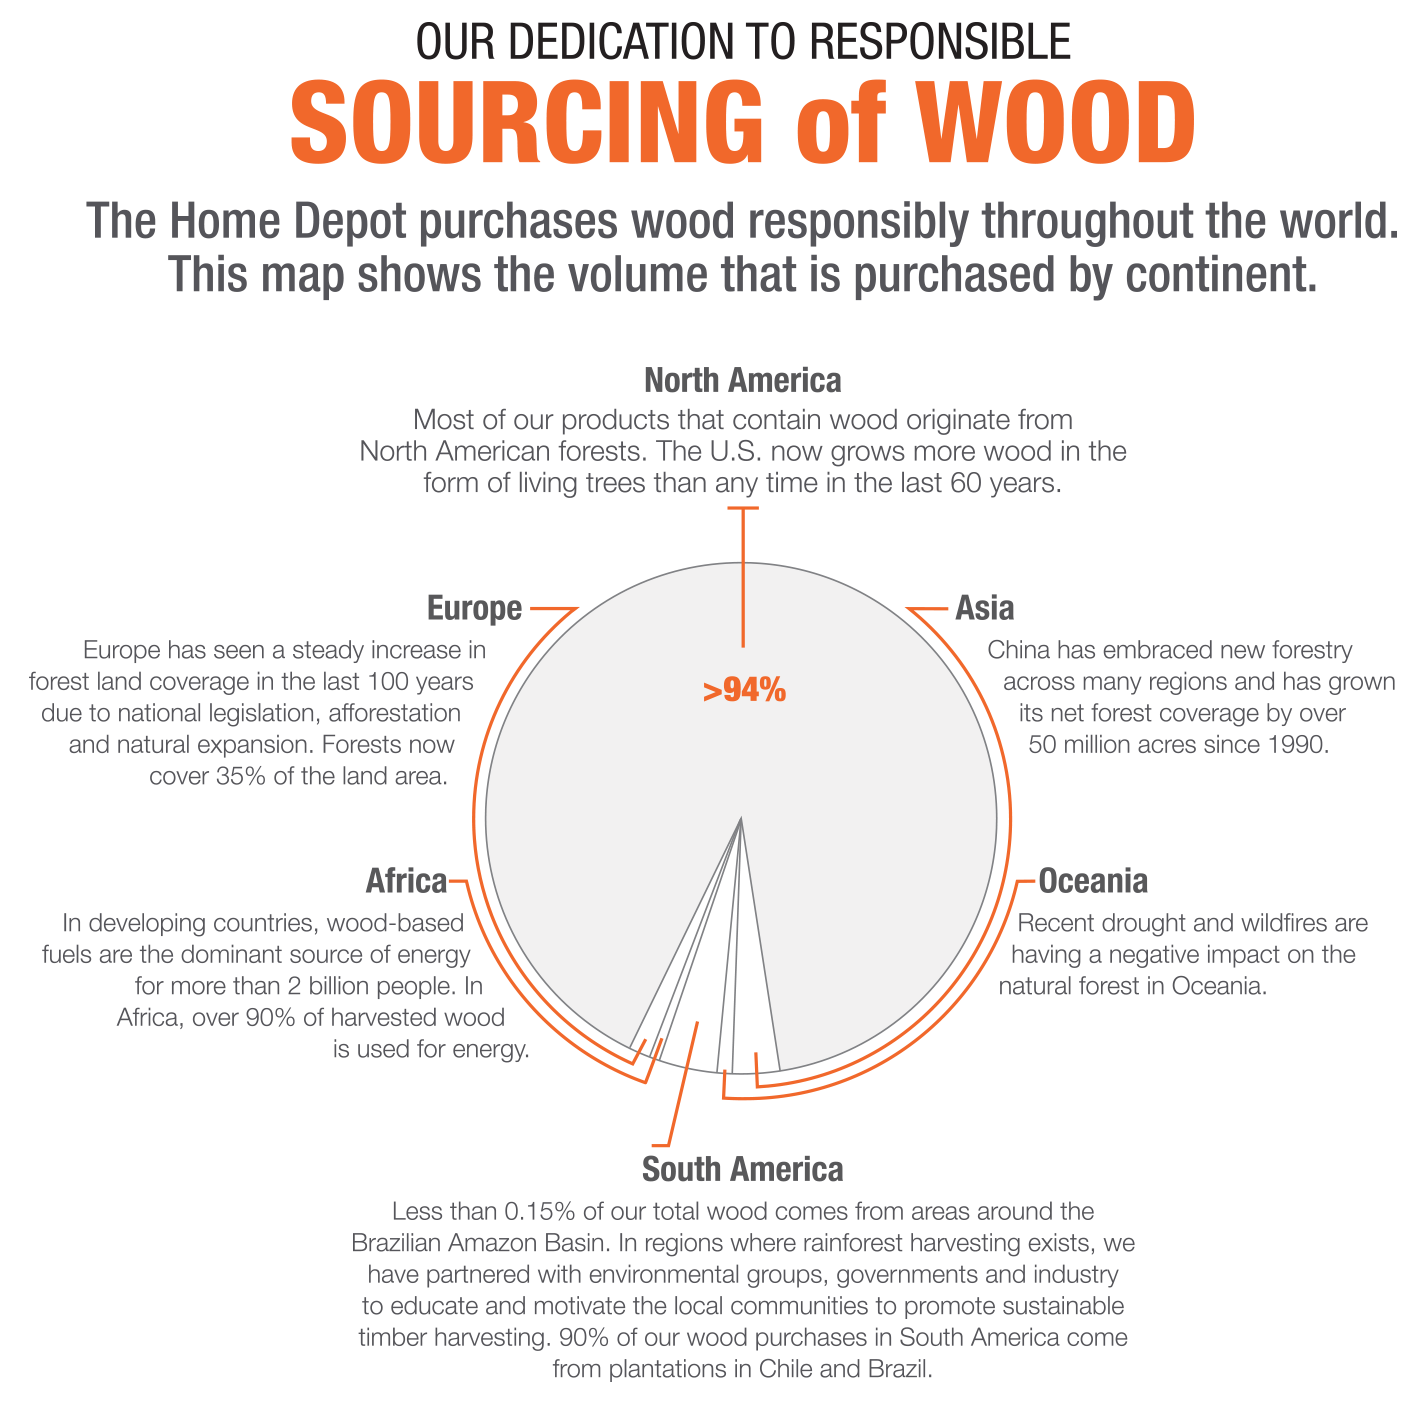 Our Wood Sourcing & Purchasing